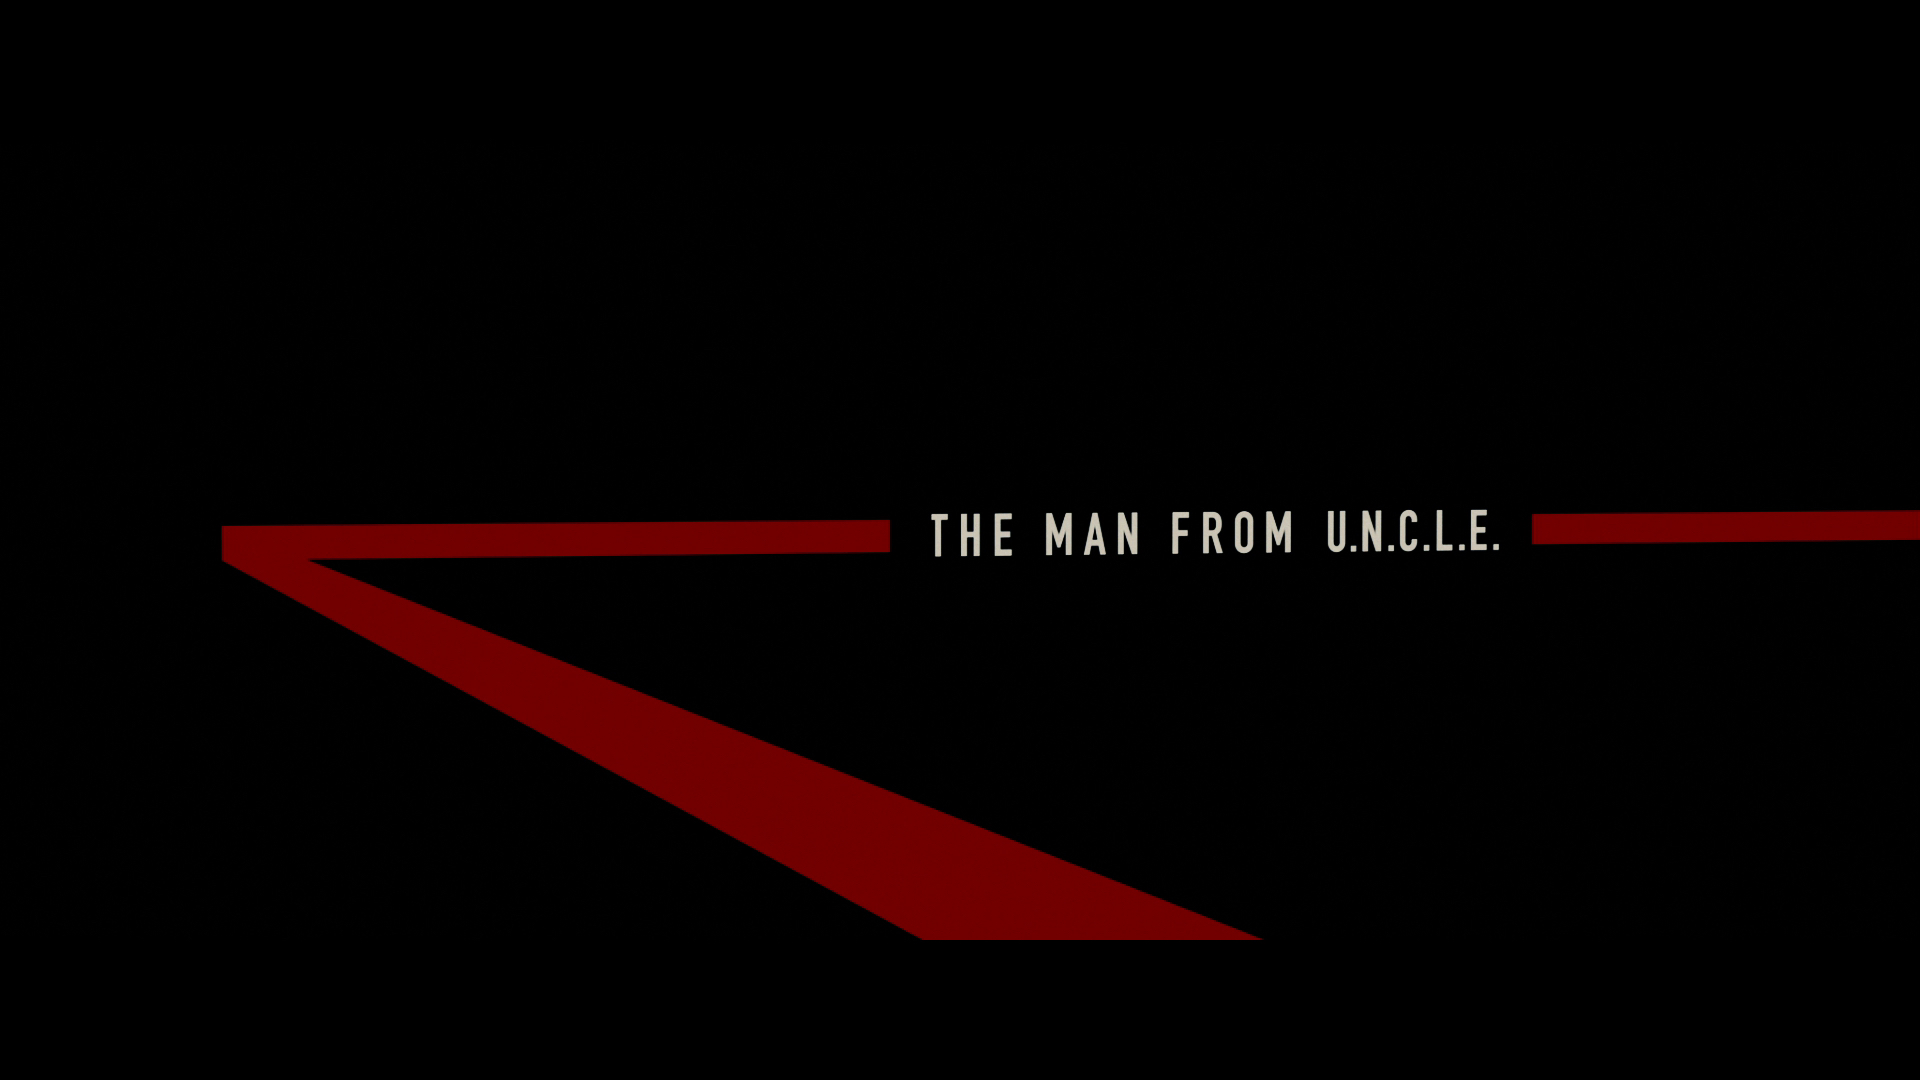 The Man from UNCLE 2015 Blu ray DVD Talk Review 1920x1080